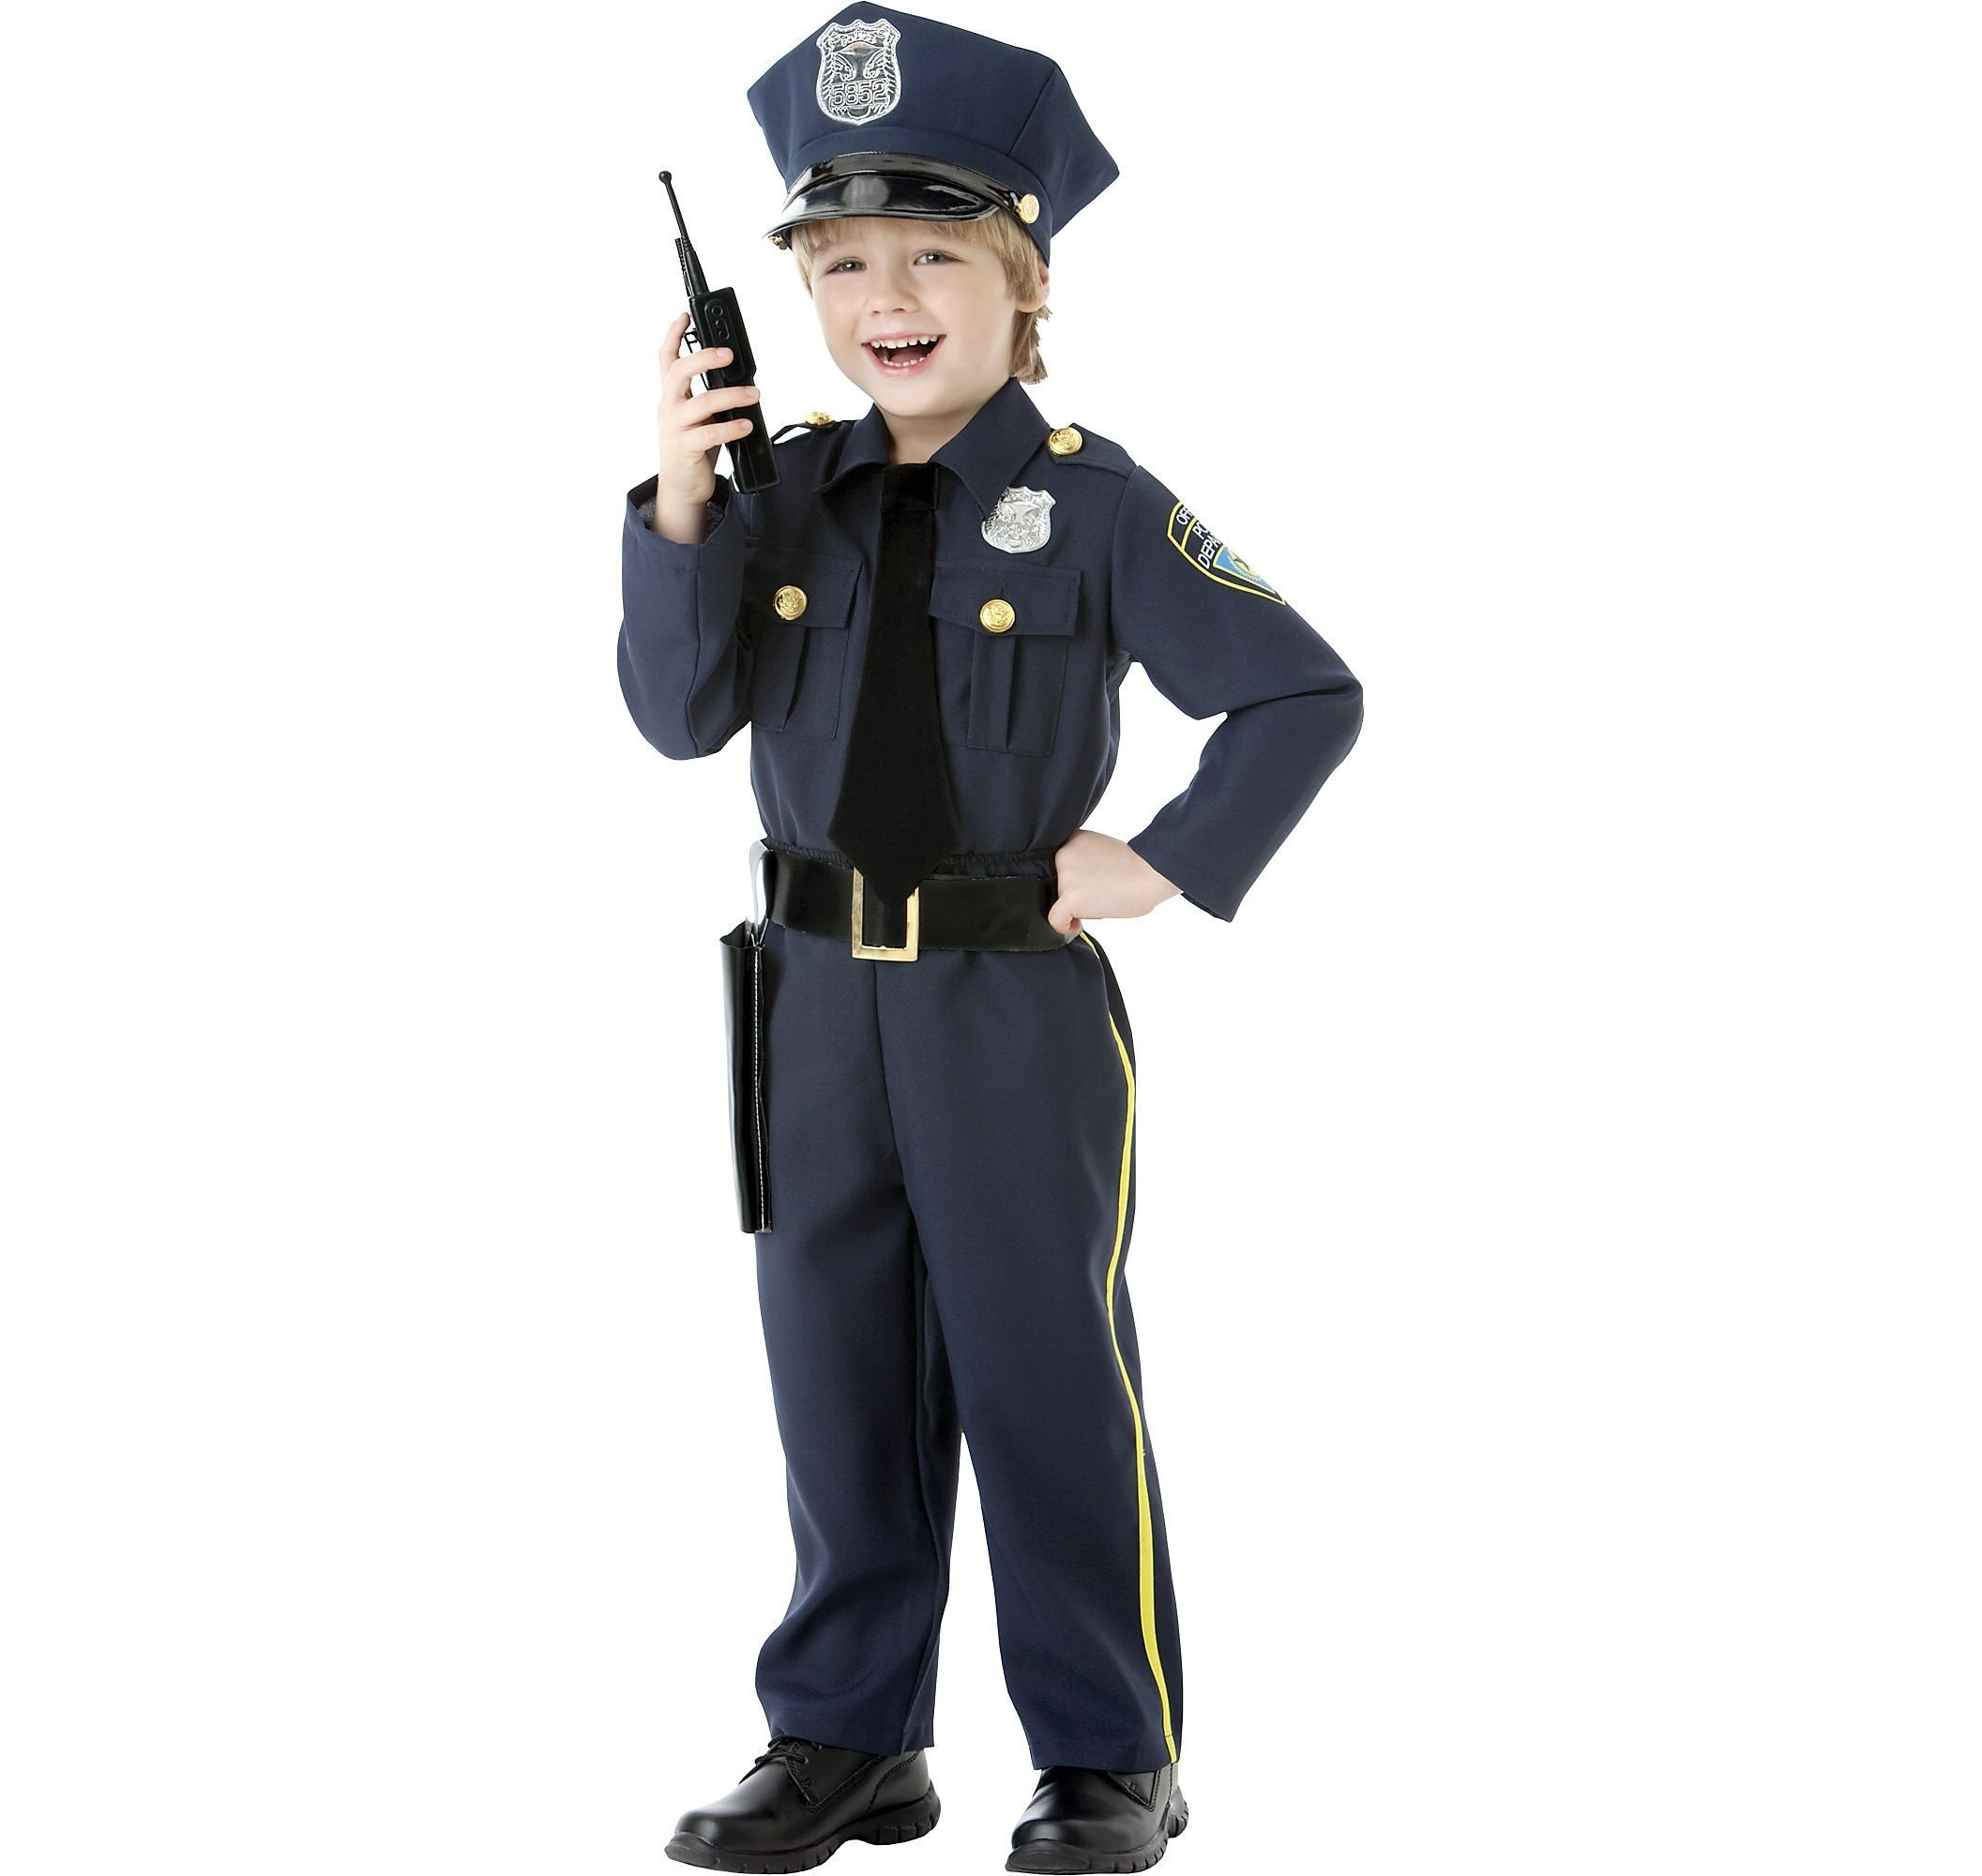 Amscan Cops and Robbers Party Navy Blue Police Officer Costume, Fabric, Children's Toddler (3-4), 5-Piece Set